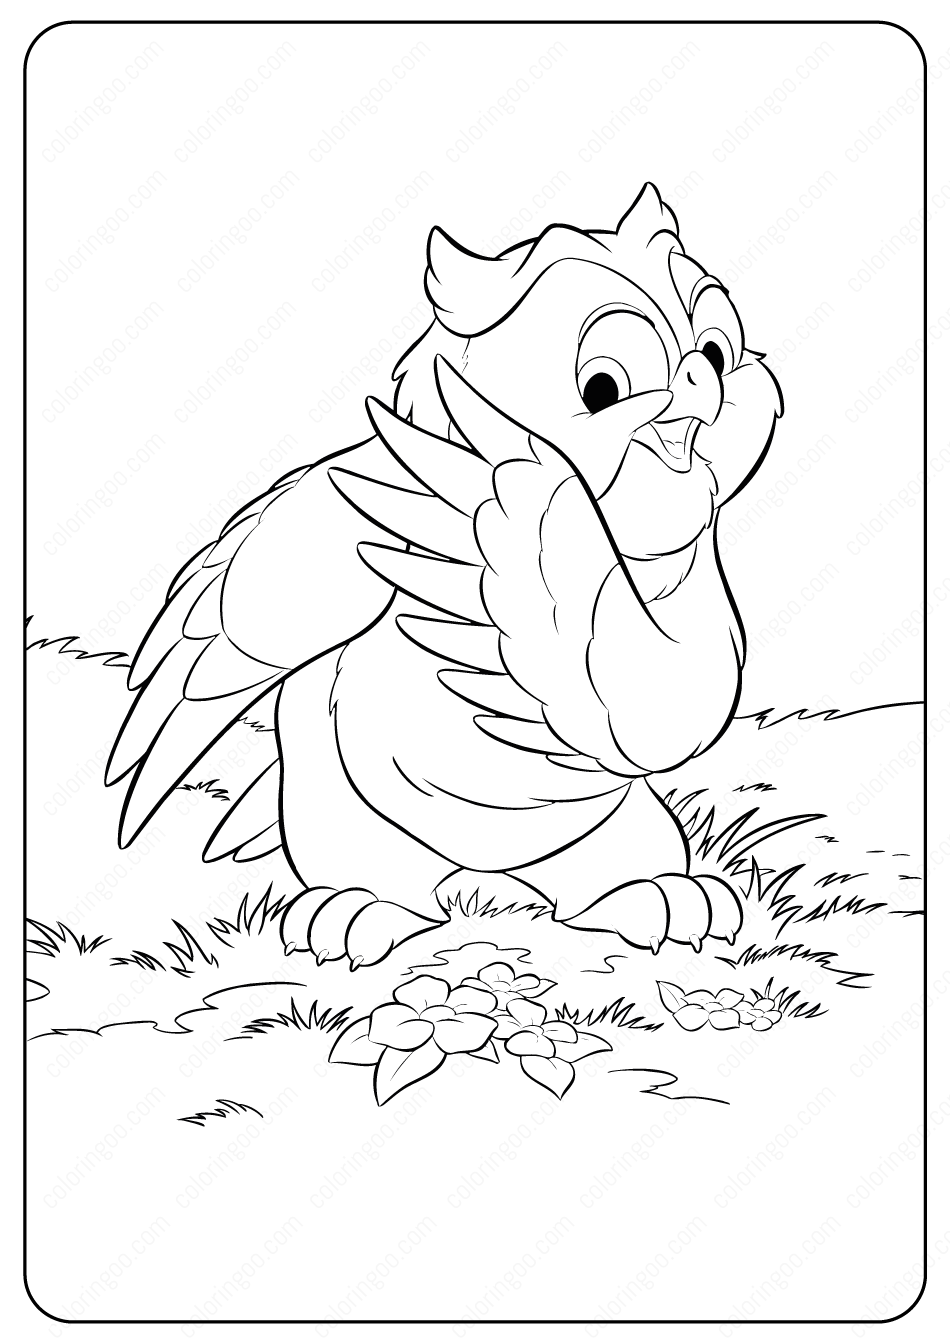 Bambi Friend Owl Coloring Pages Owl Coloring Pages Coloring Pages Owl Cartoon